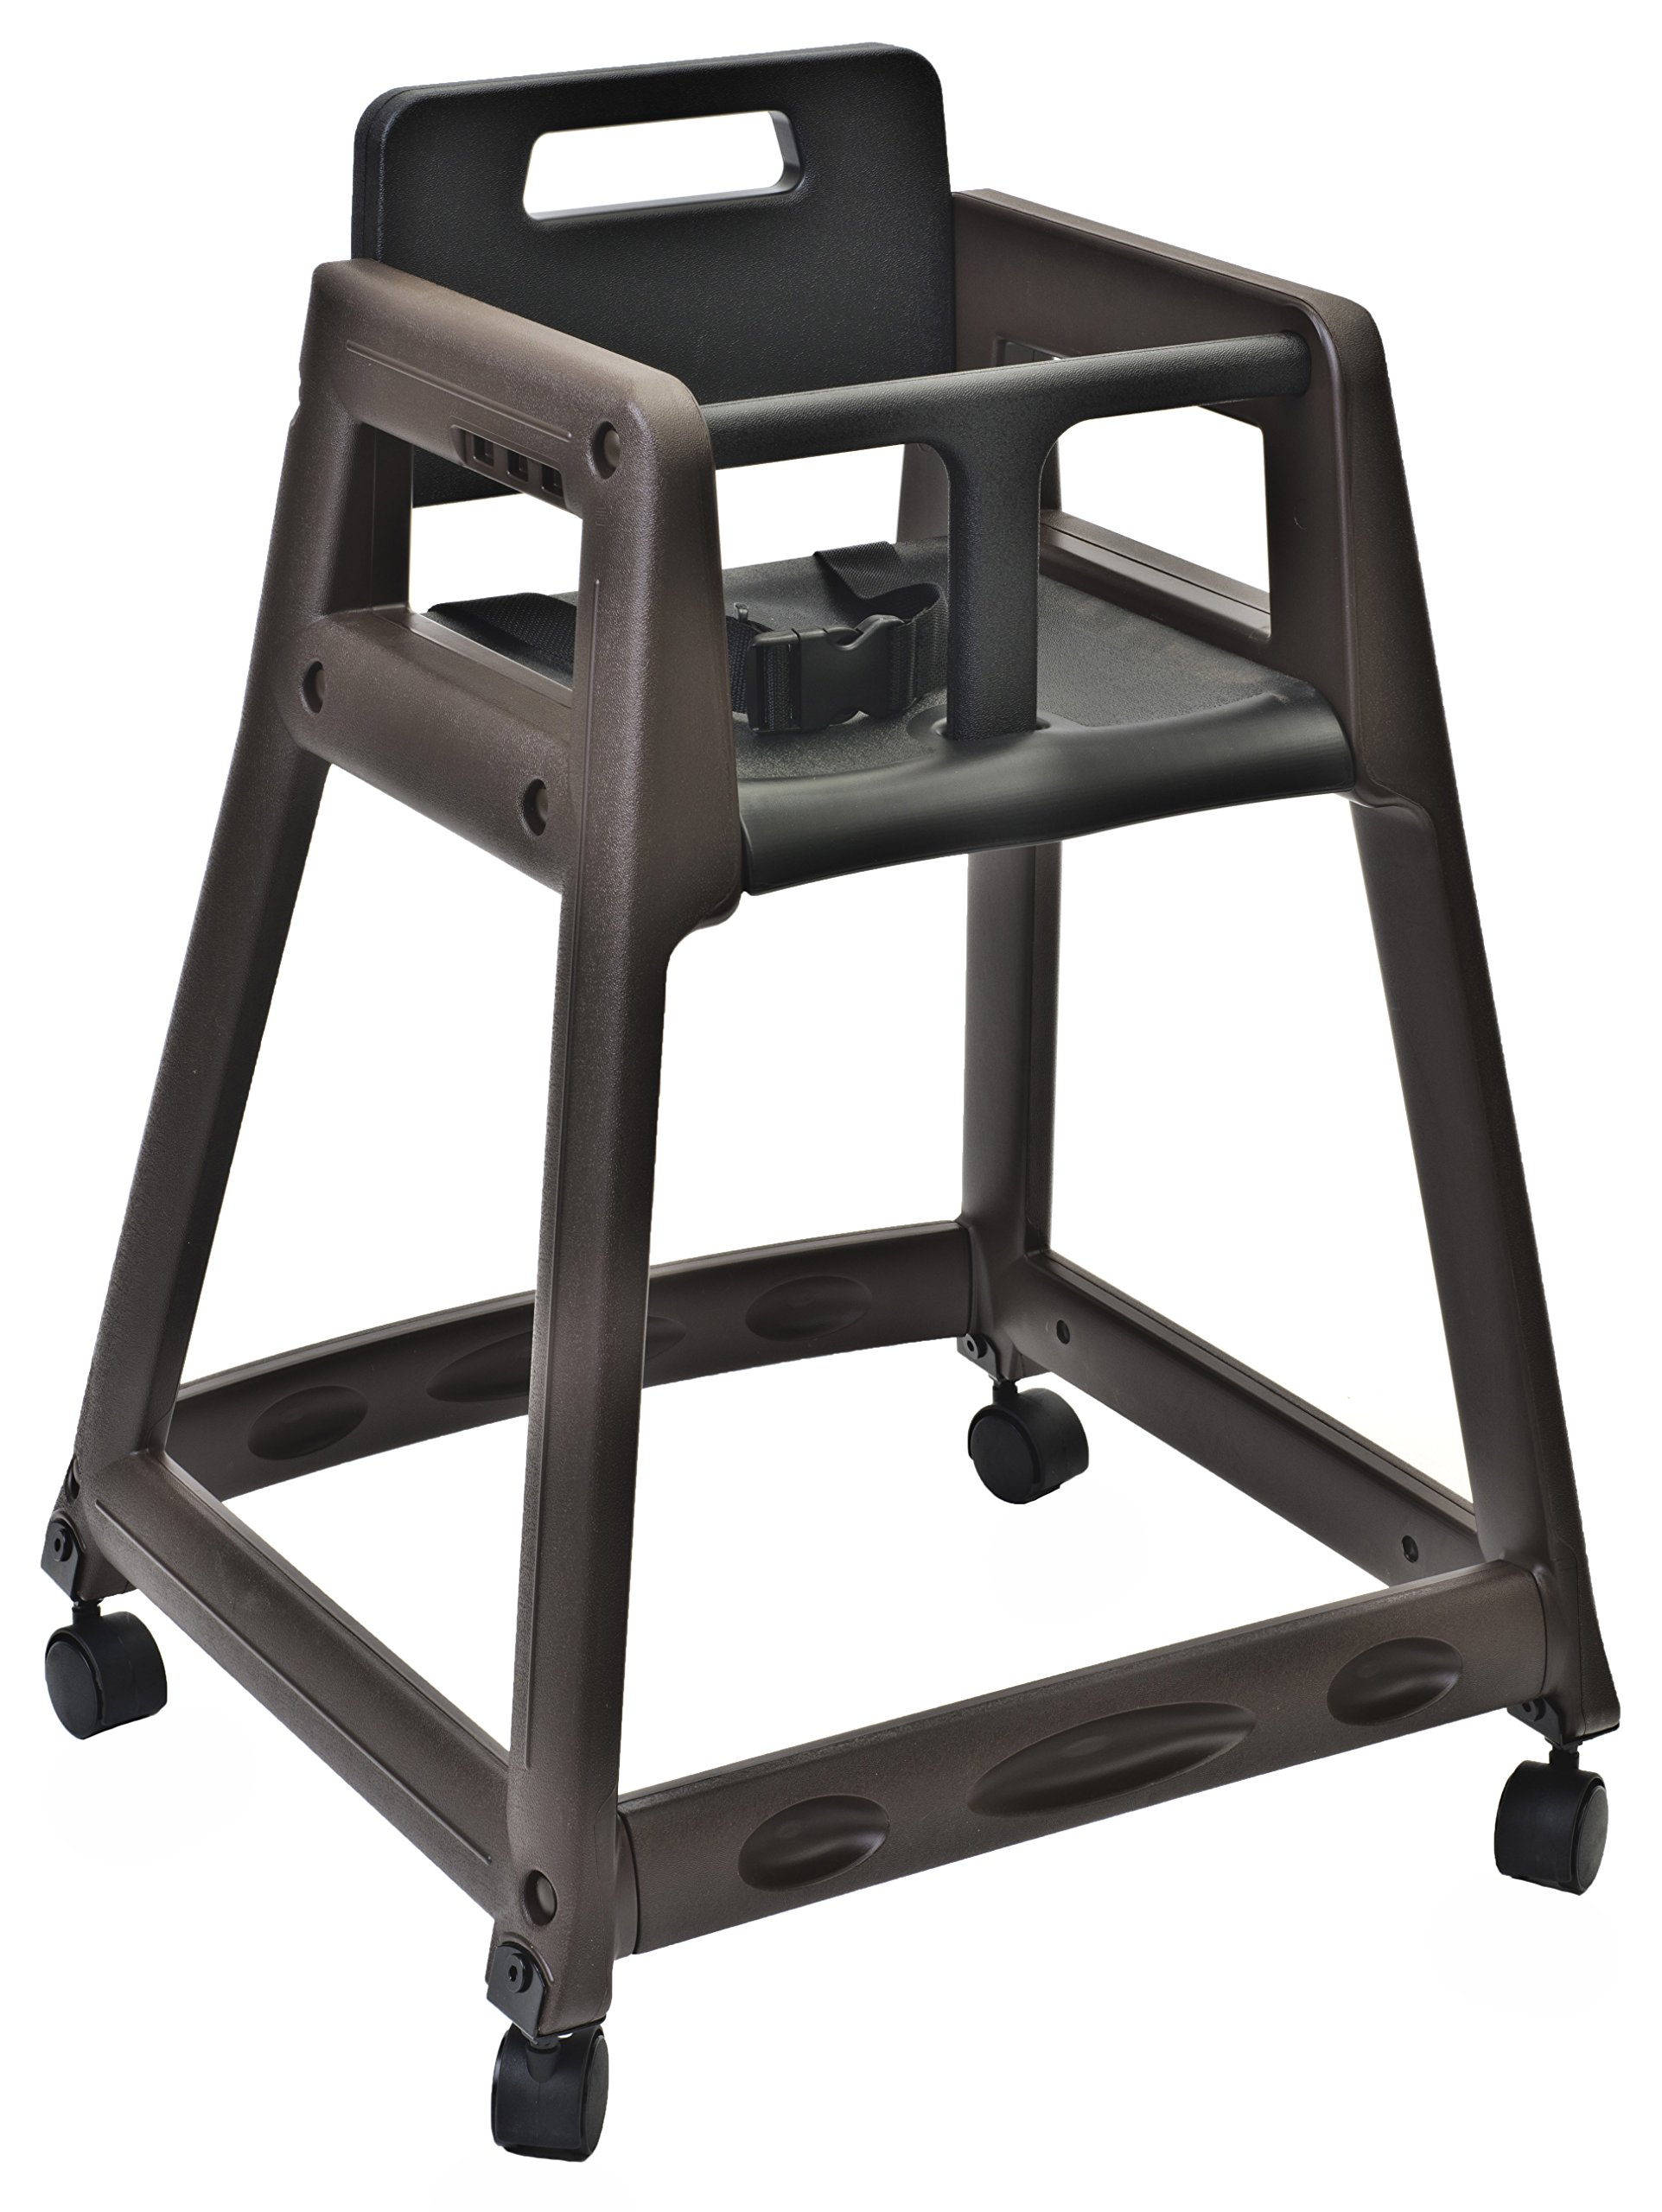 Koala Kare KB850-09W Diner Plastic High Chair with caster Wheels, Brown , 23'' Height, 23'' width, 30'' Length